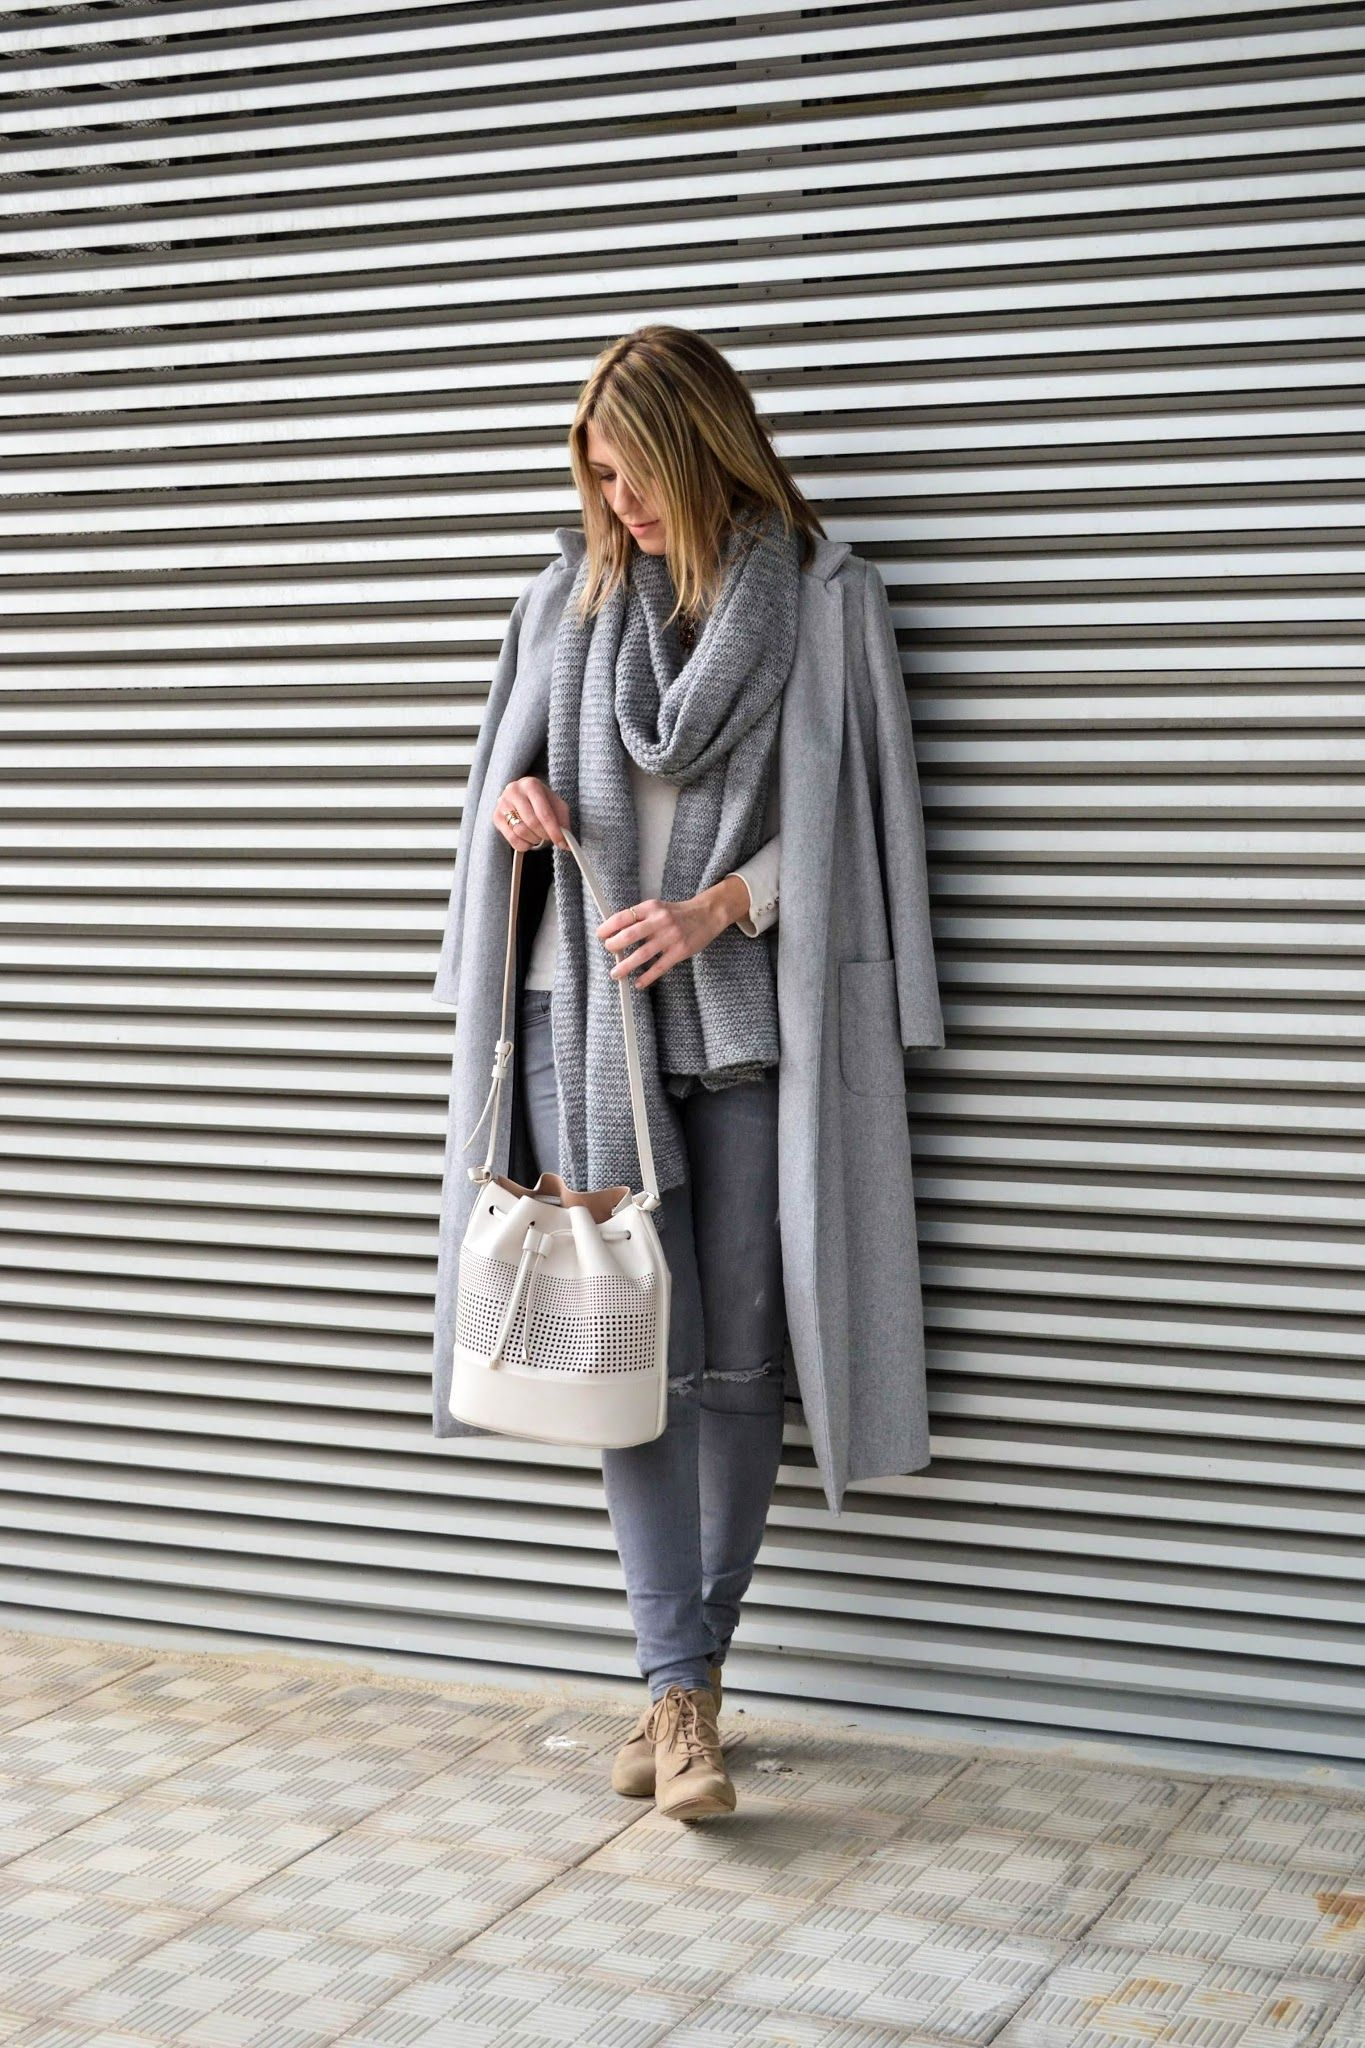 outfit on jeans and roses blog shein long grey coat zara knit grey scarf zara perforated. Black Bedroom Furniture Sets. Home Design Ideas